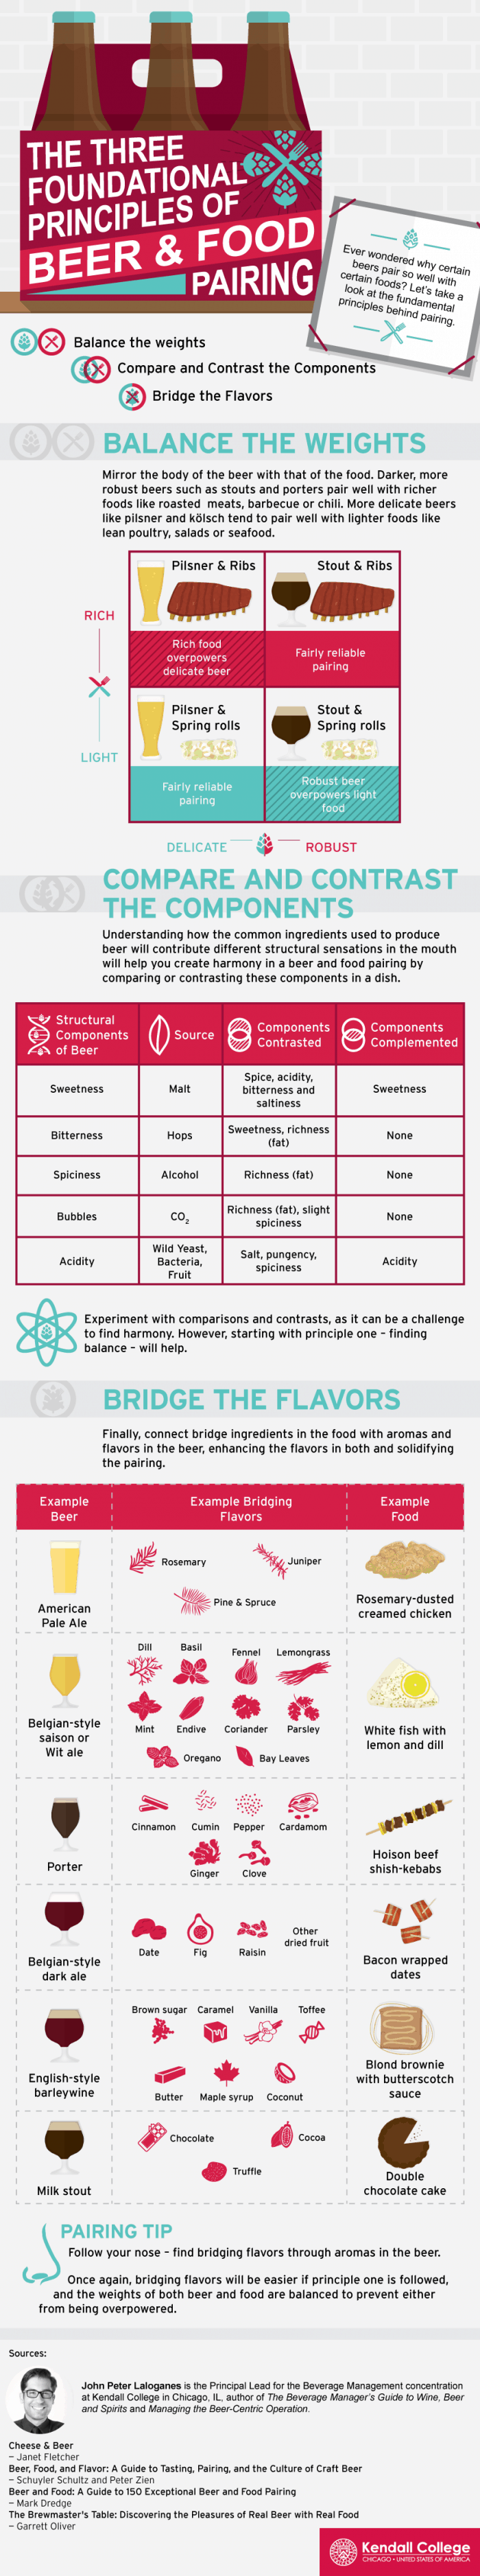 Principles of Beer and Food Pairing Infographic